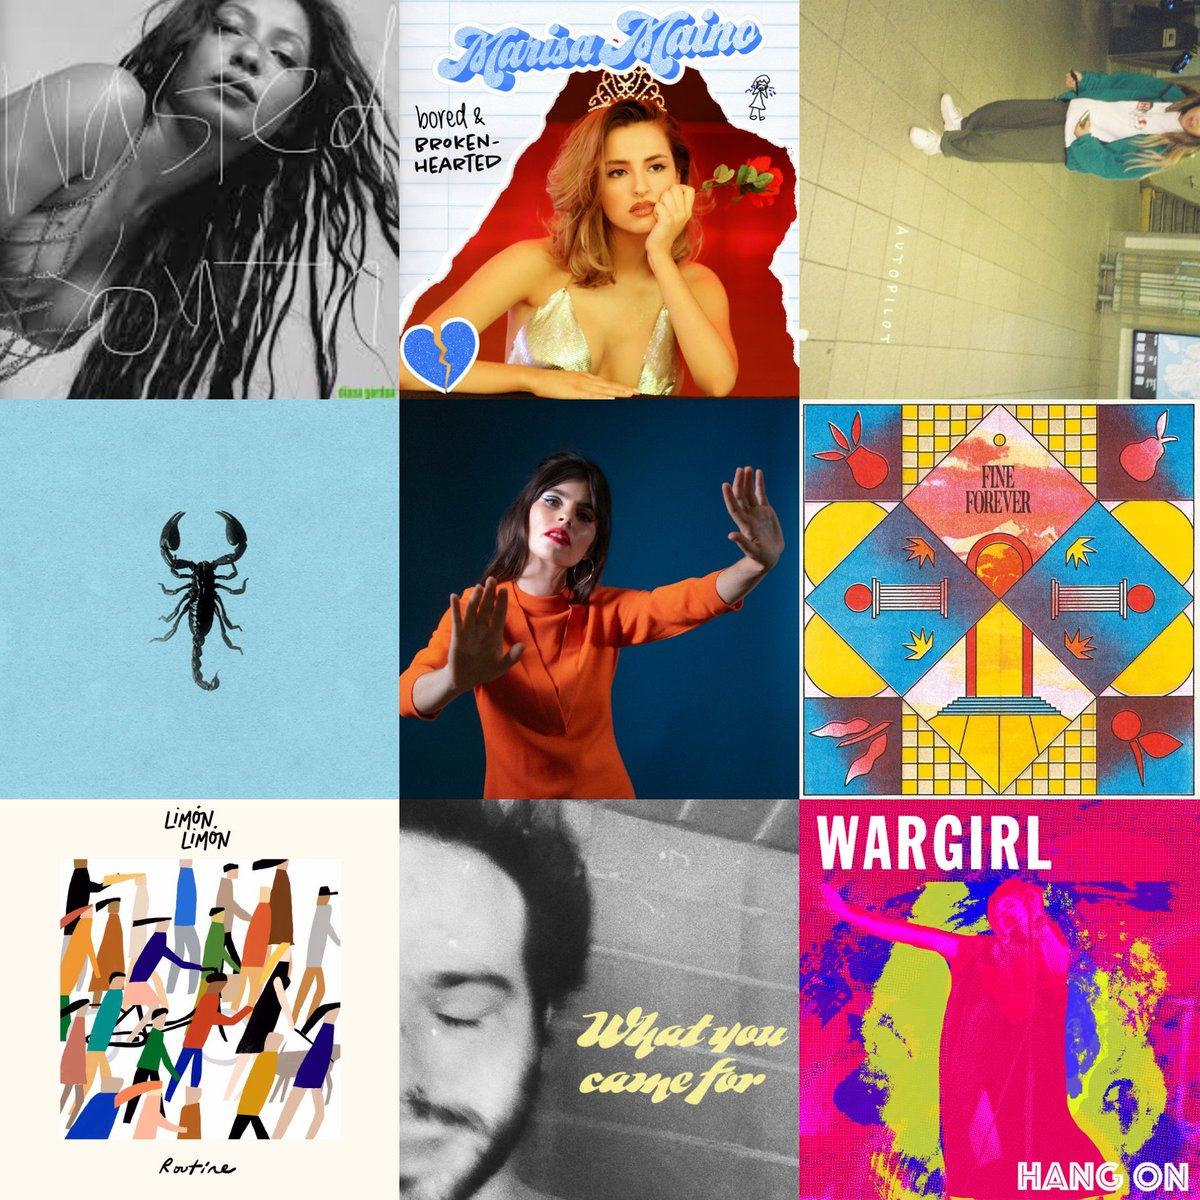 #NewMusic   Diana Gordon - wasted youth Marisa Maino - bored & brokenhearted Tiffany Day - autopilot Bed Scene - scorpion Hazel English - five and dime Varsity - runaway Limón Limón - routine Bad Actor - what you came for Wargirl - hang on pic.twitter.com/TY6dcROowQ